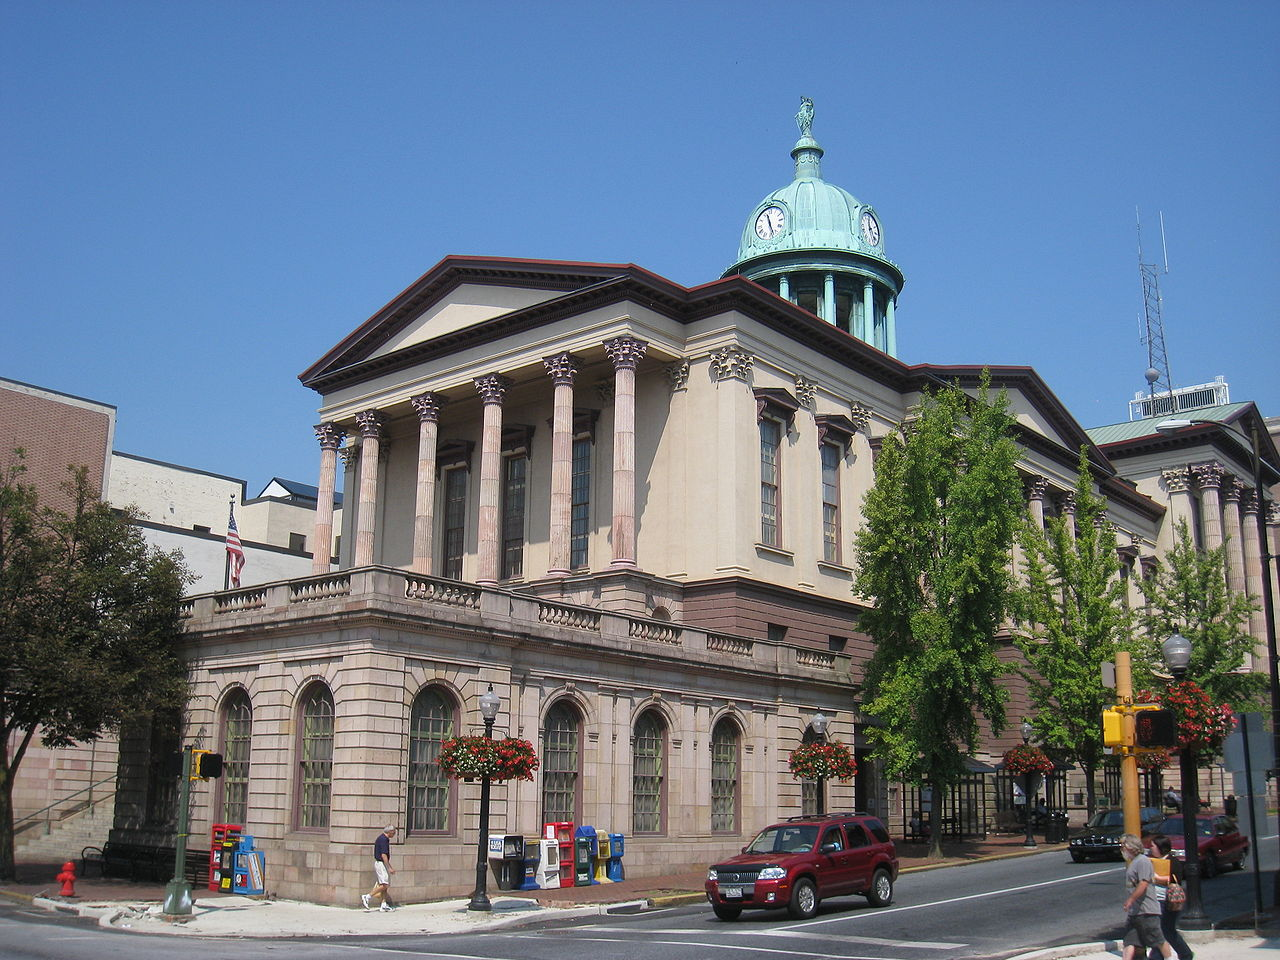 https://upload.wikimedia.org/wikipedia/commons/thumb/7/7b/Lancaster_County_Courthouse_-_IMG_7712.JPG/1280px-Lancaster_County_Courthouse_-_IMG_7712.JPG